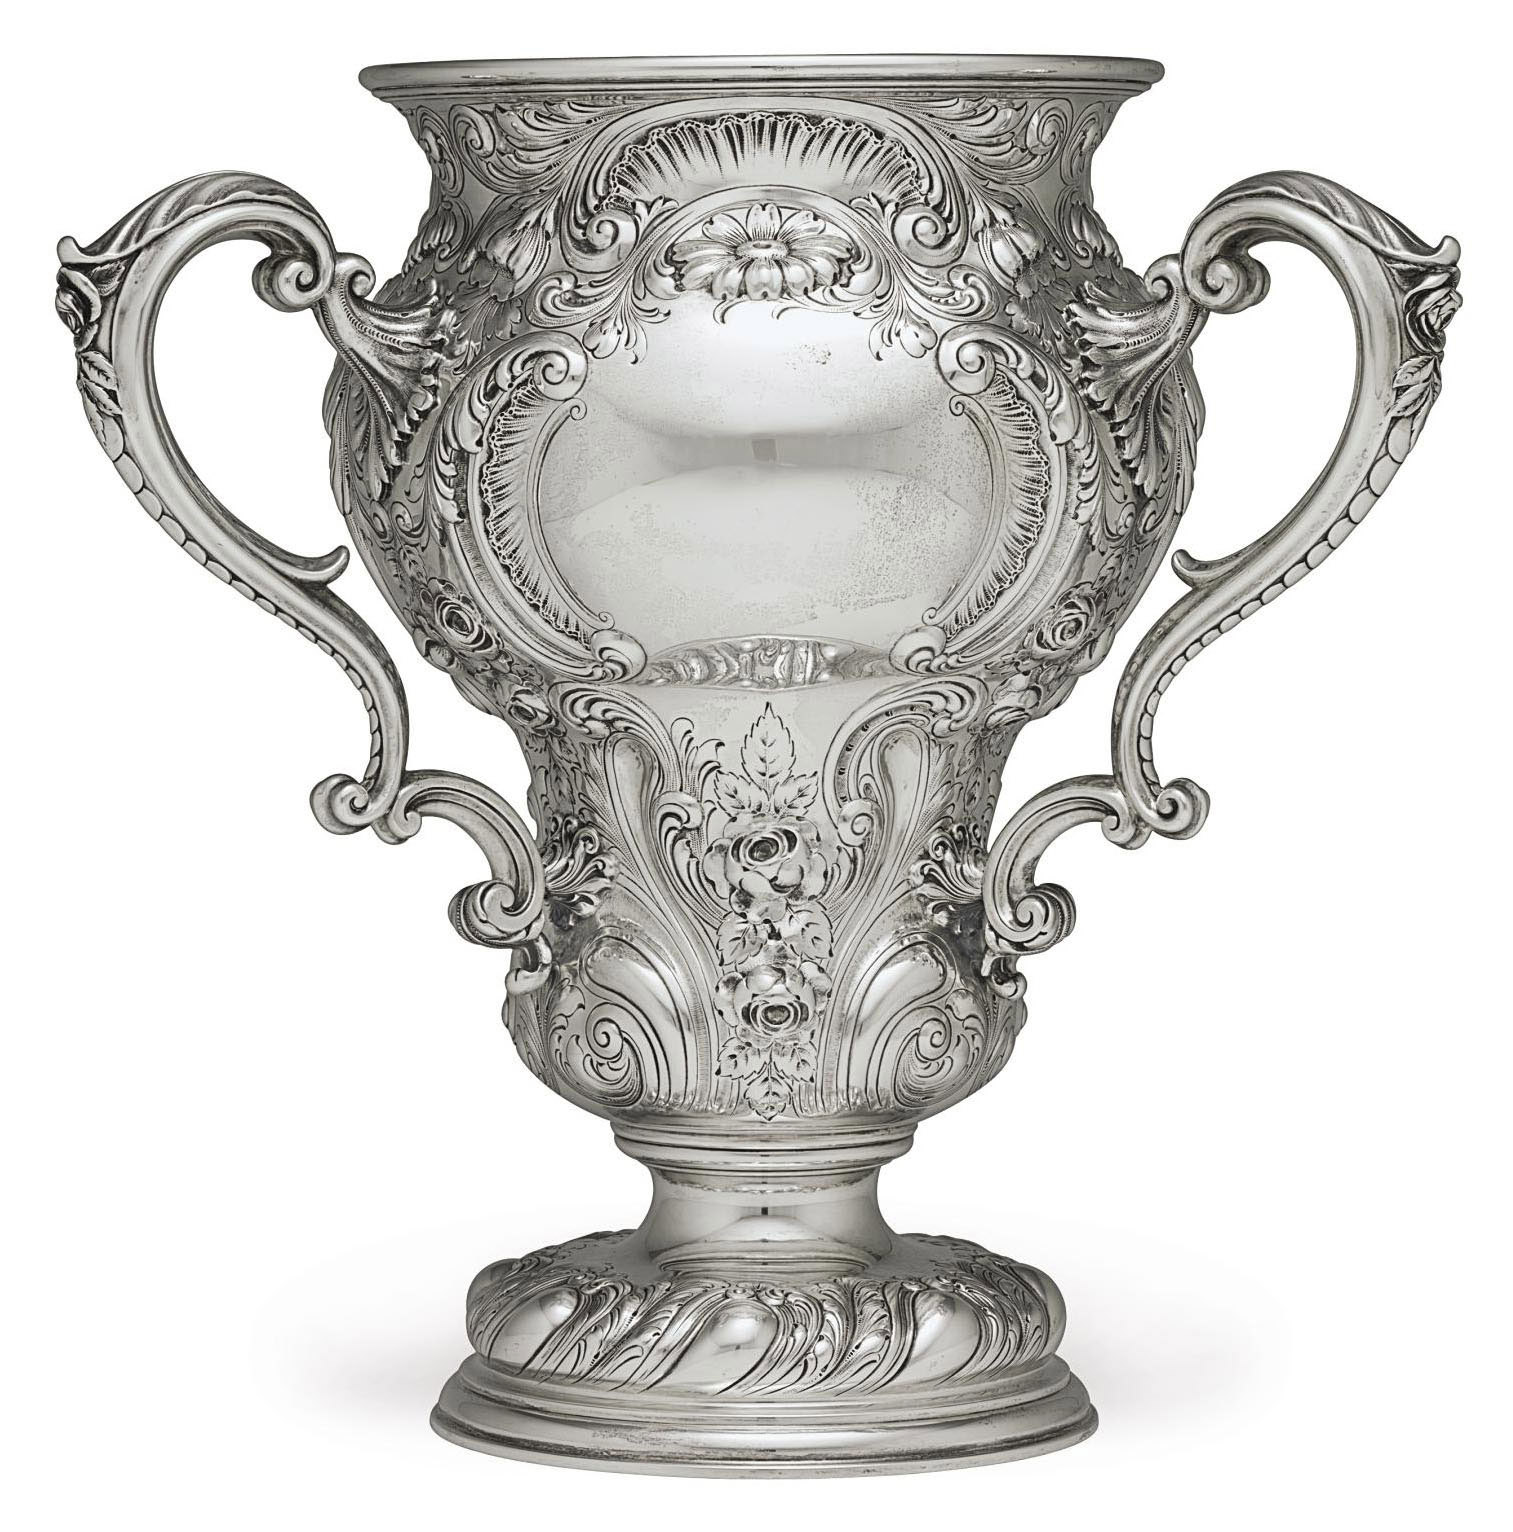 A SILVER LOVING CUP